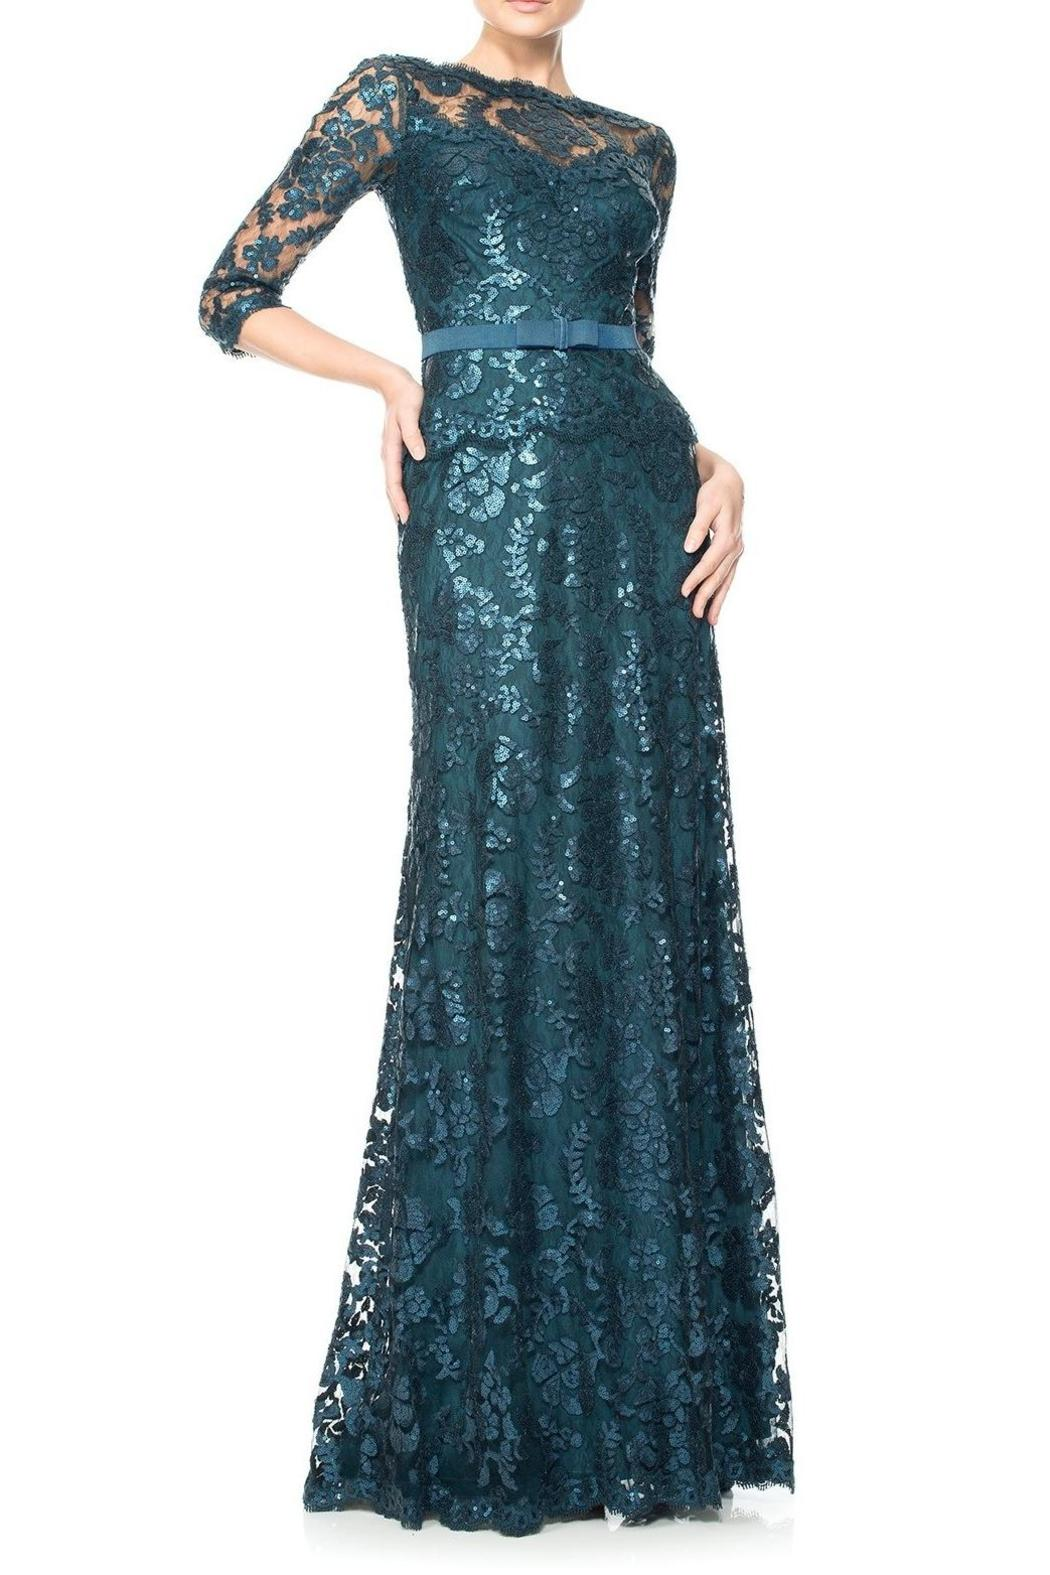 Tadashi Shoji Embroidered Lace Gown from New Jersey by District 5 ...